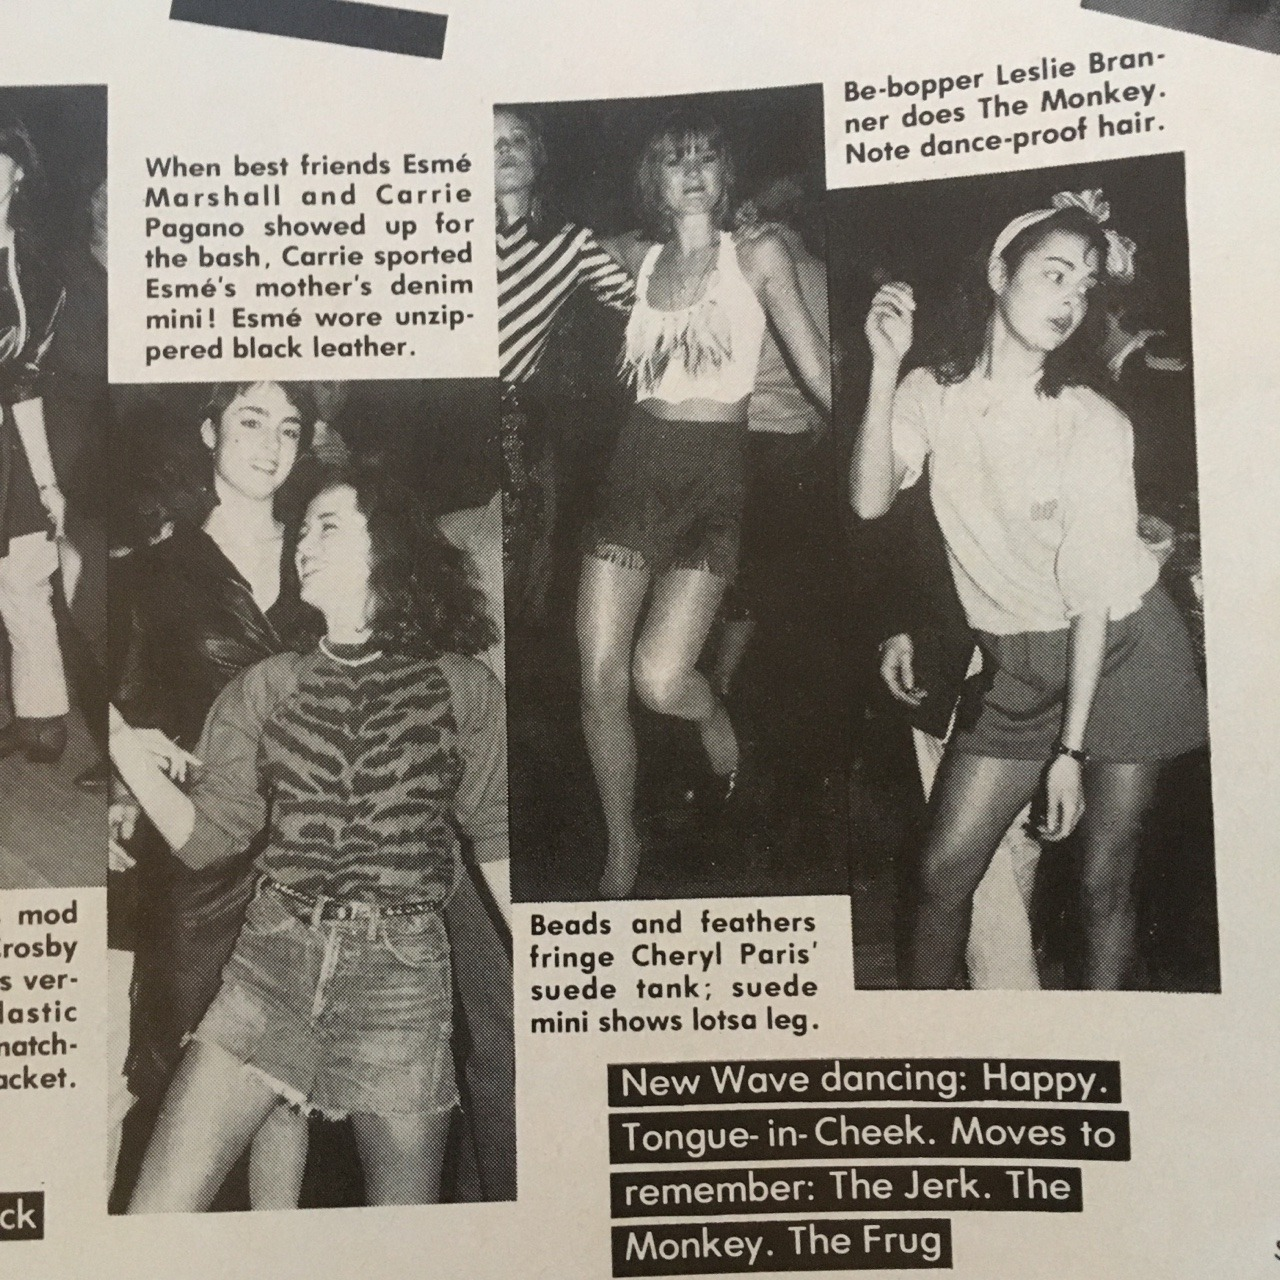 Thanks for the #danceparty prompt,  @detroitlib !   Found this awesome gem in the June 1980 issue of Mademoiselle. Here's an excerpt of the article, just in case you are curious:   Dancing's never been hotter - and at Elite Model Agency's recent bash, the models danced in minis! What they danced to: disco, sure, plus new music that sounds like the sixties - but with an eighties bite.   If you have a prompt & would like me to dig through the archives & find a little #vintagespiration, comment or send a note!